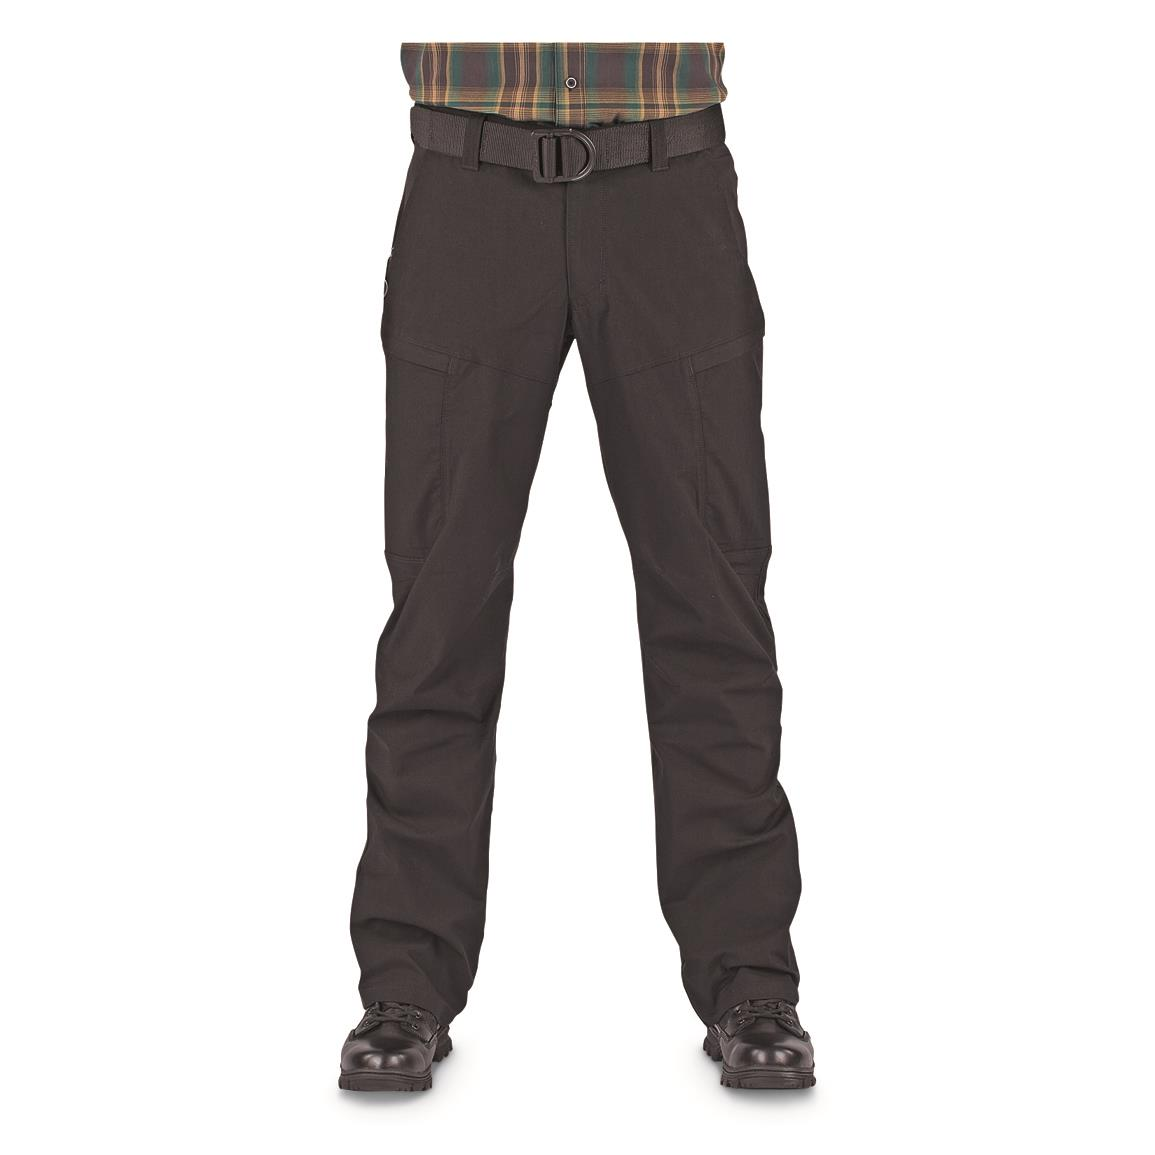 5.11 Tactical Men's Apex Pants, Black